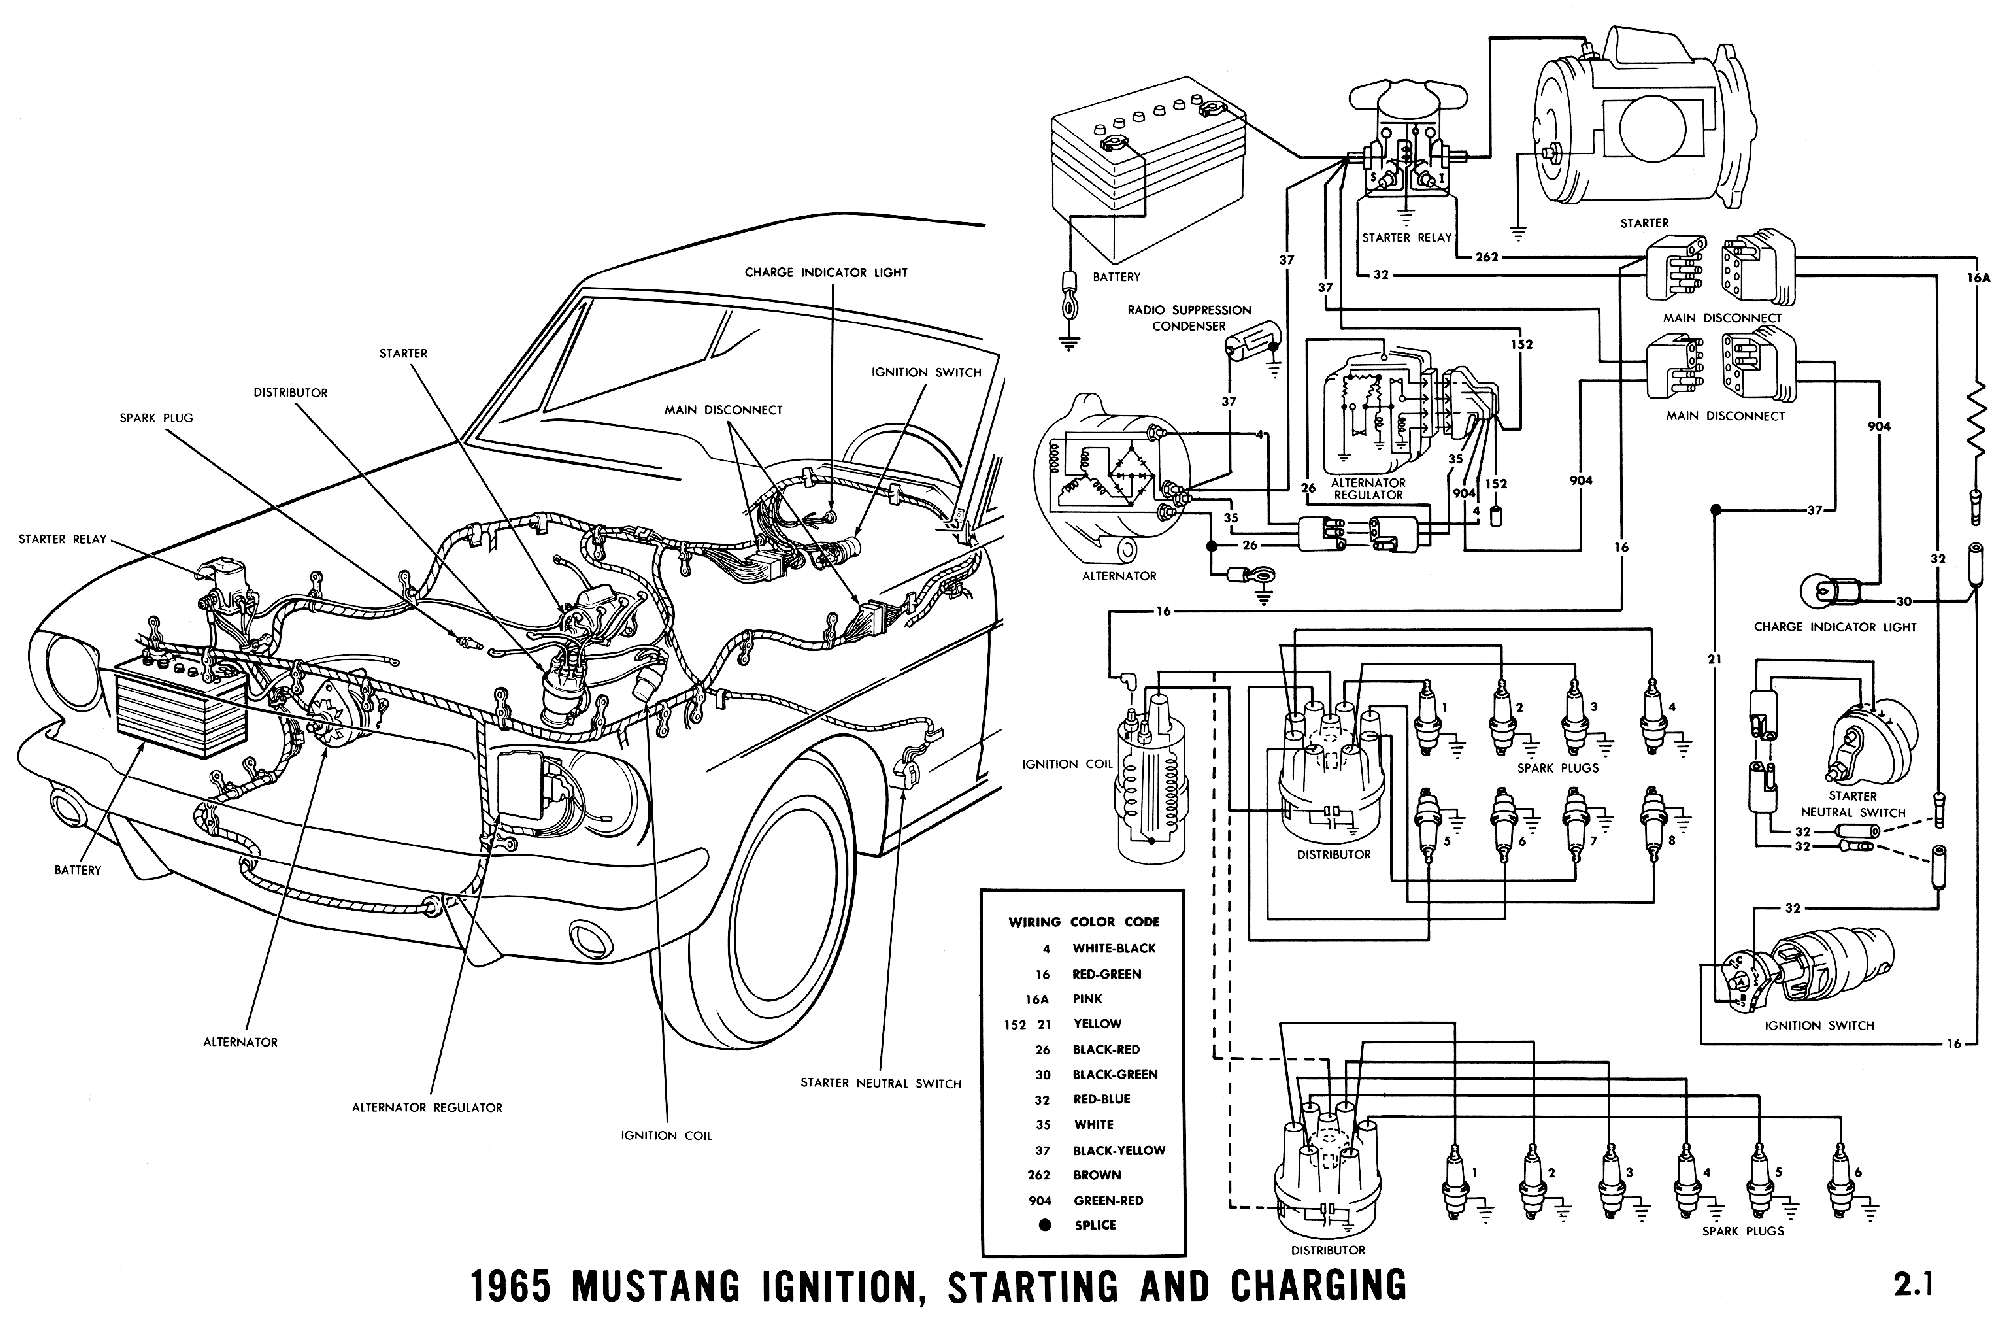 1965 Mustang Wiring Diagrams Average Joe Restoration 1987 Ford Stereo Harness Color Code Schematic Ignition Starting And Charging Pictorial